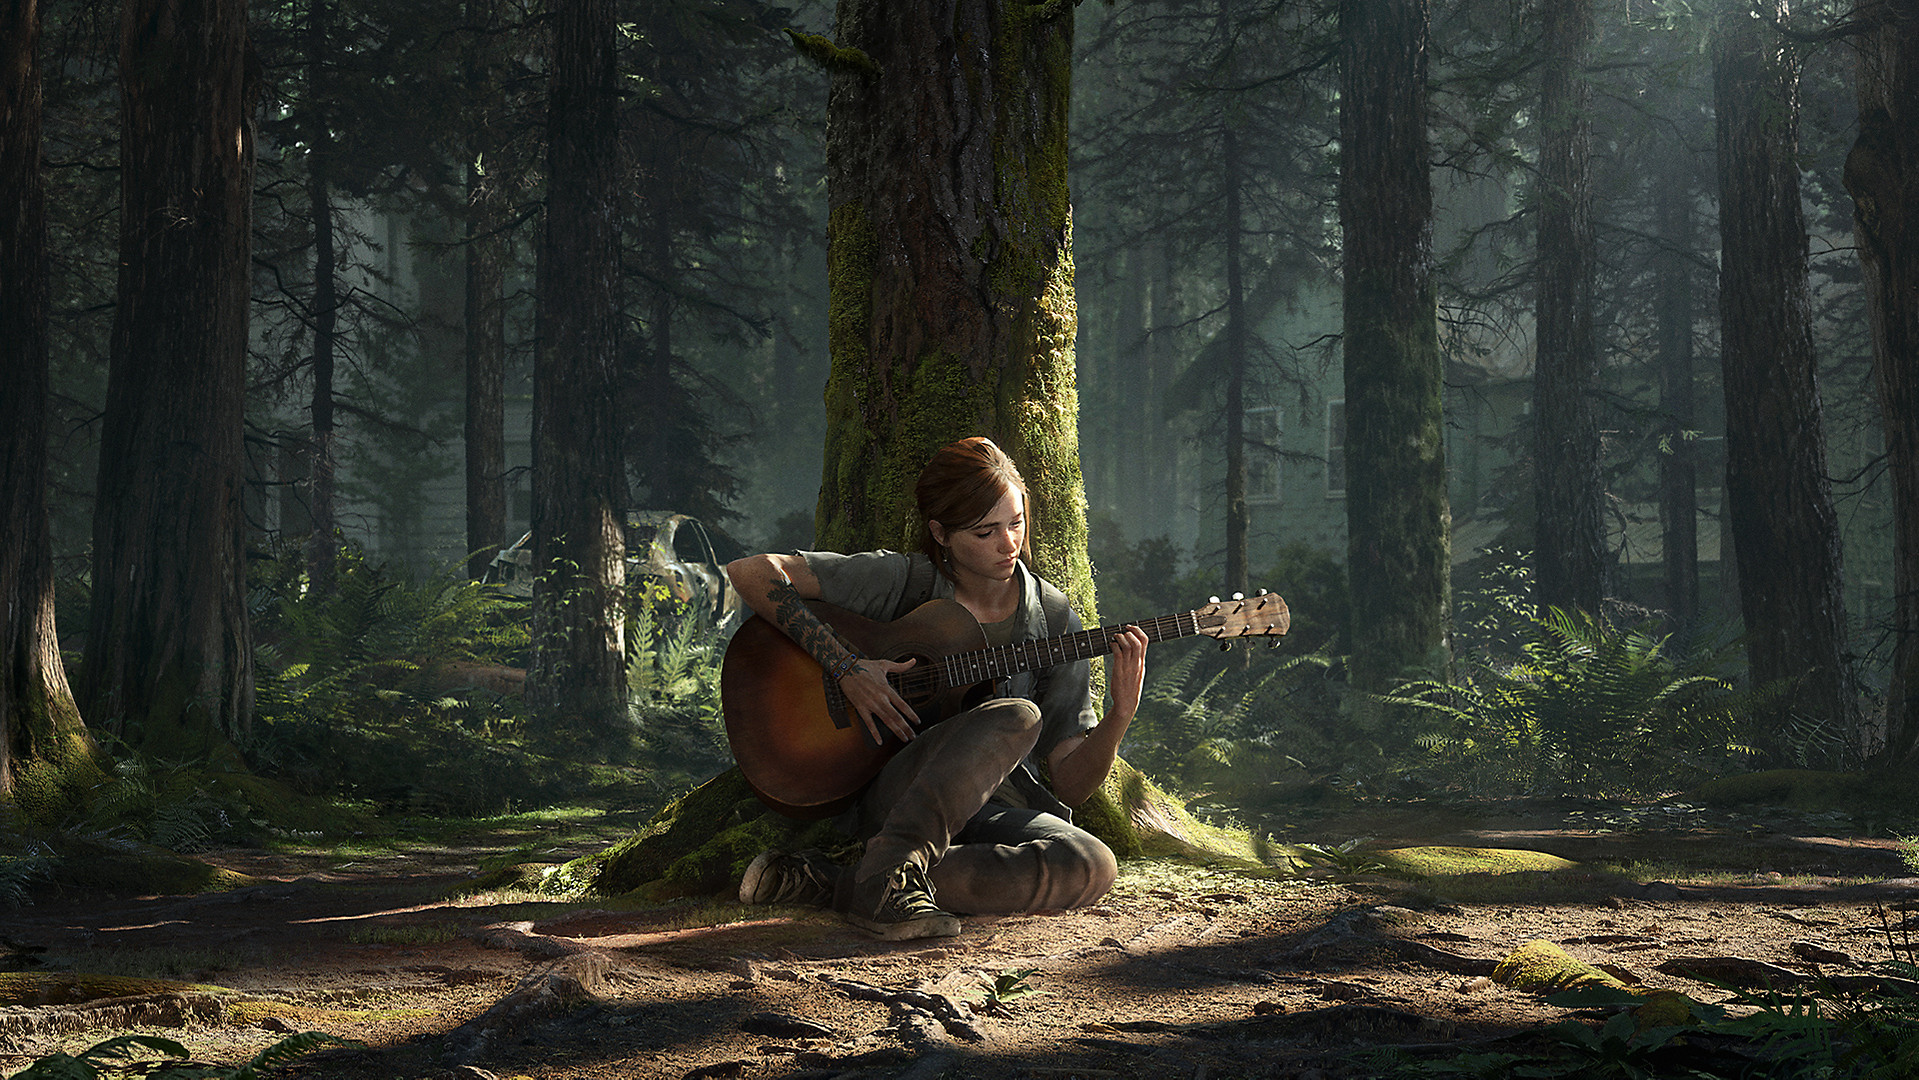 3D animated woman playing guitar on the ground in the wood amid apocalyptic setting